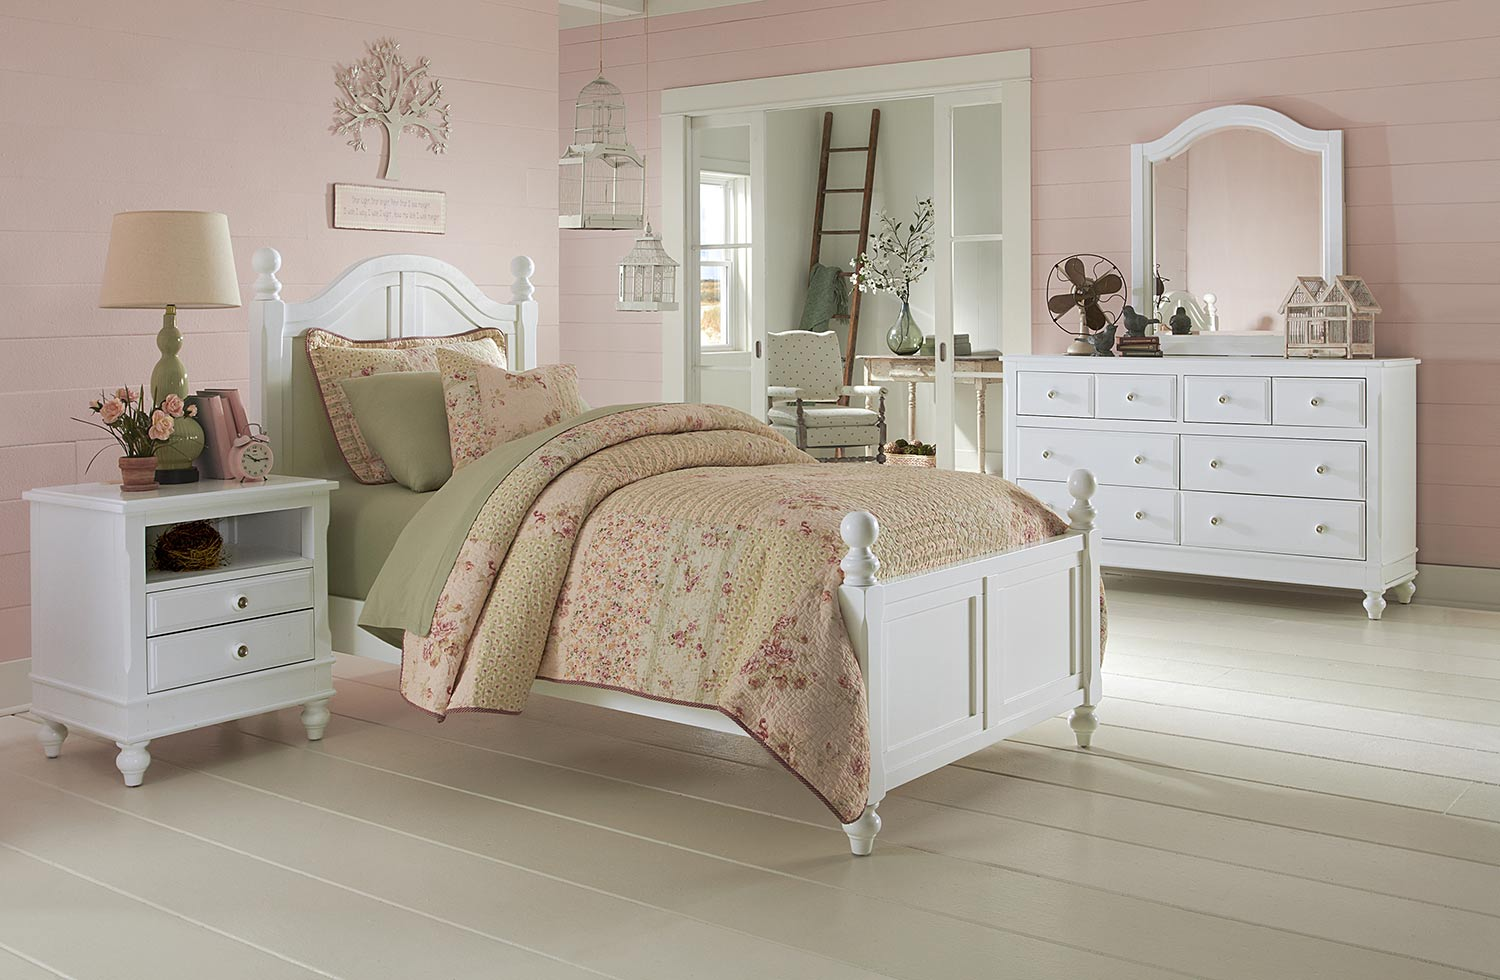 NE Kids Lake House Payton Arch Bedroom Set - White